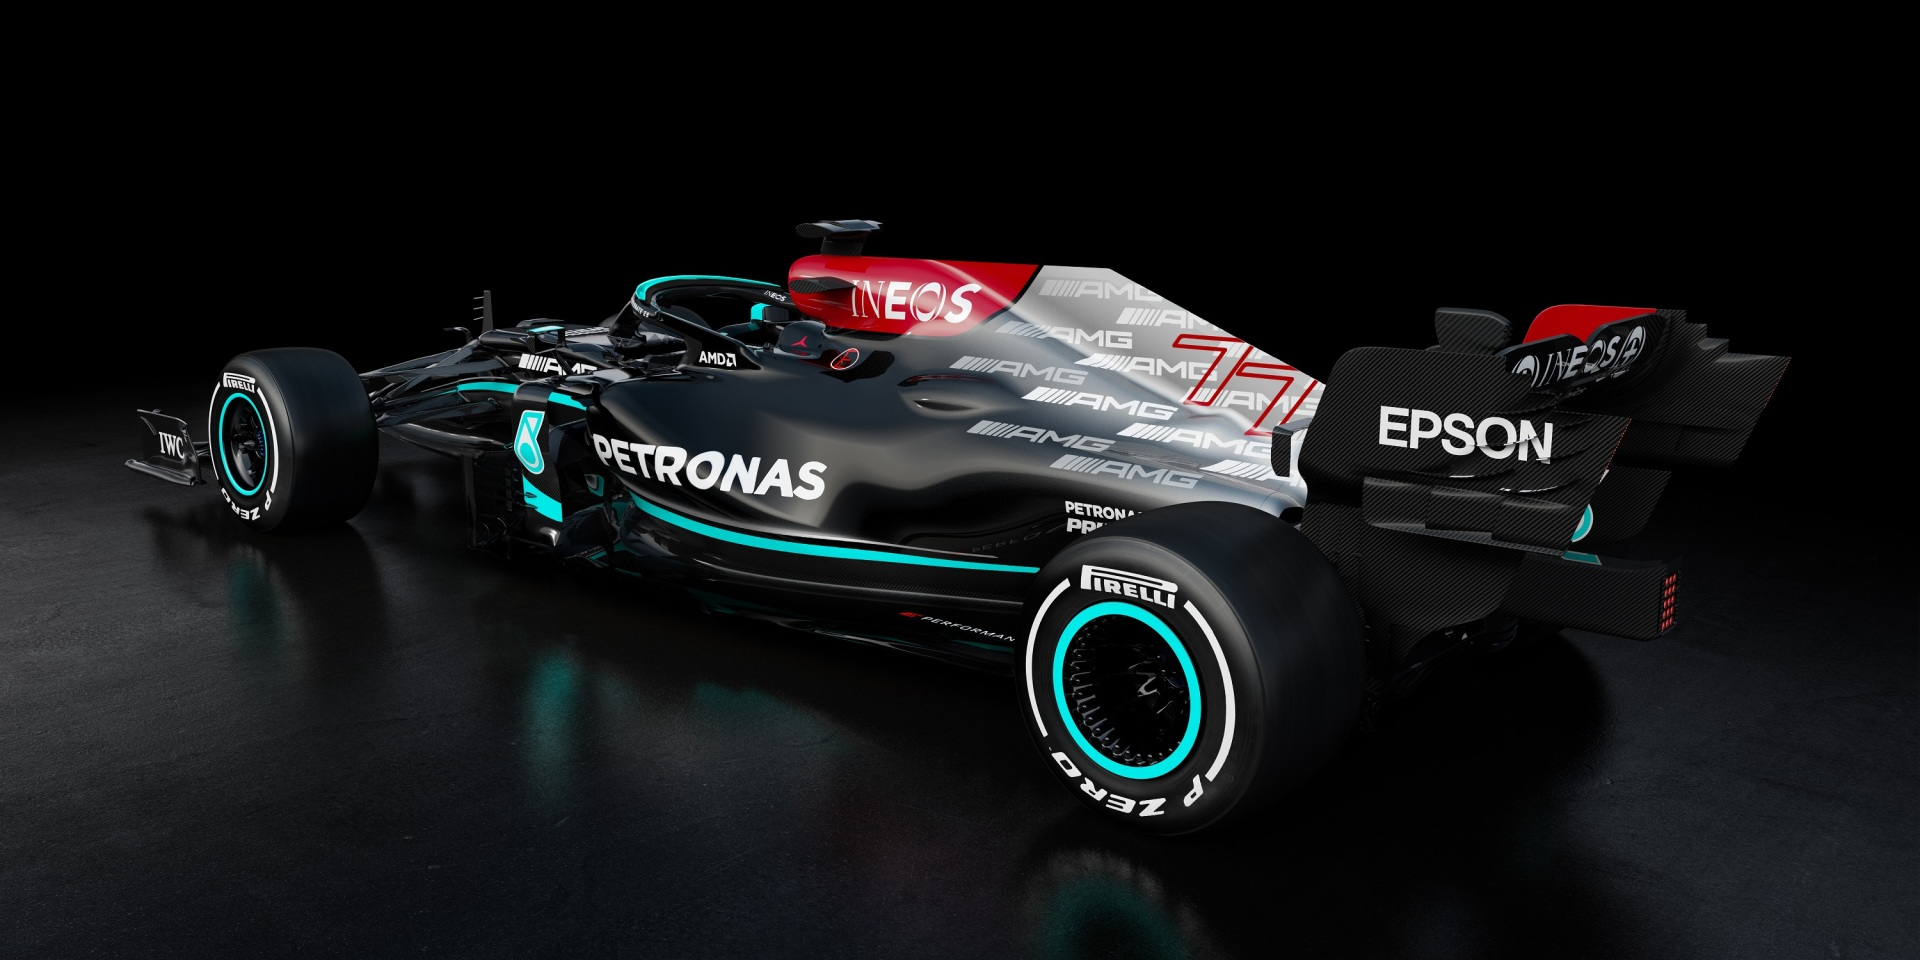 F1 Formula 1 Mercedes W12 launch